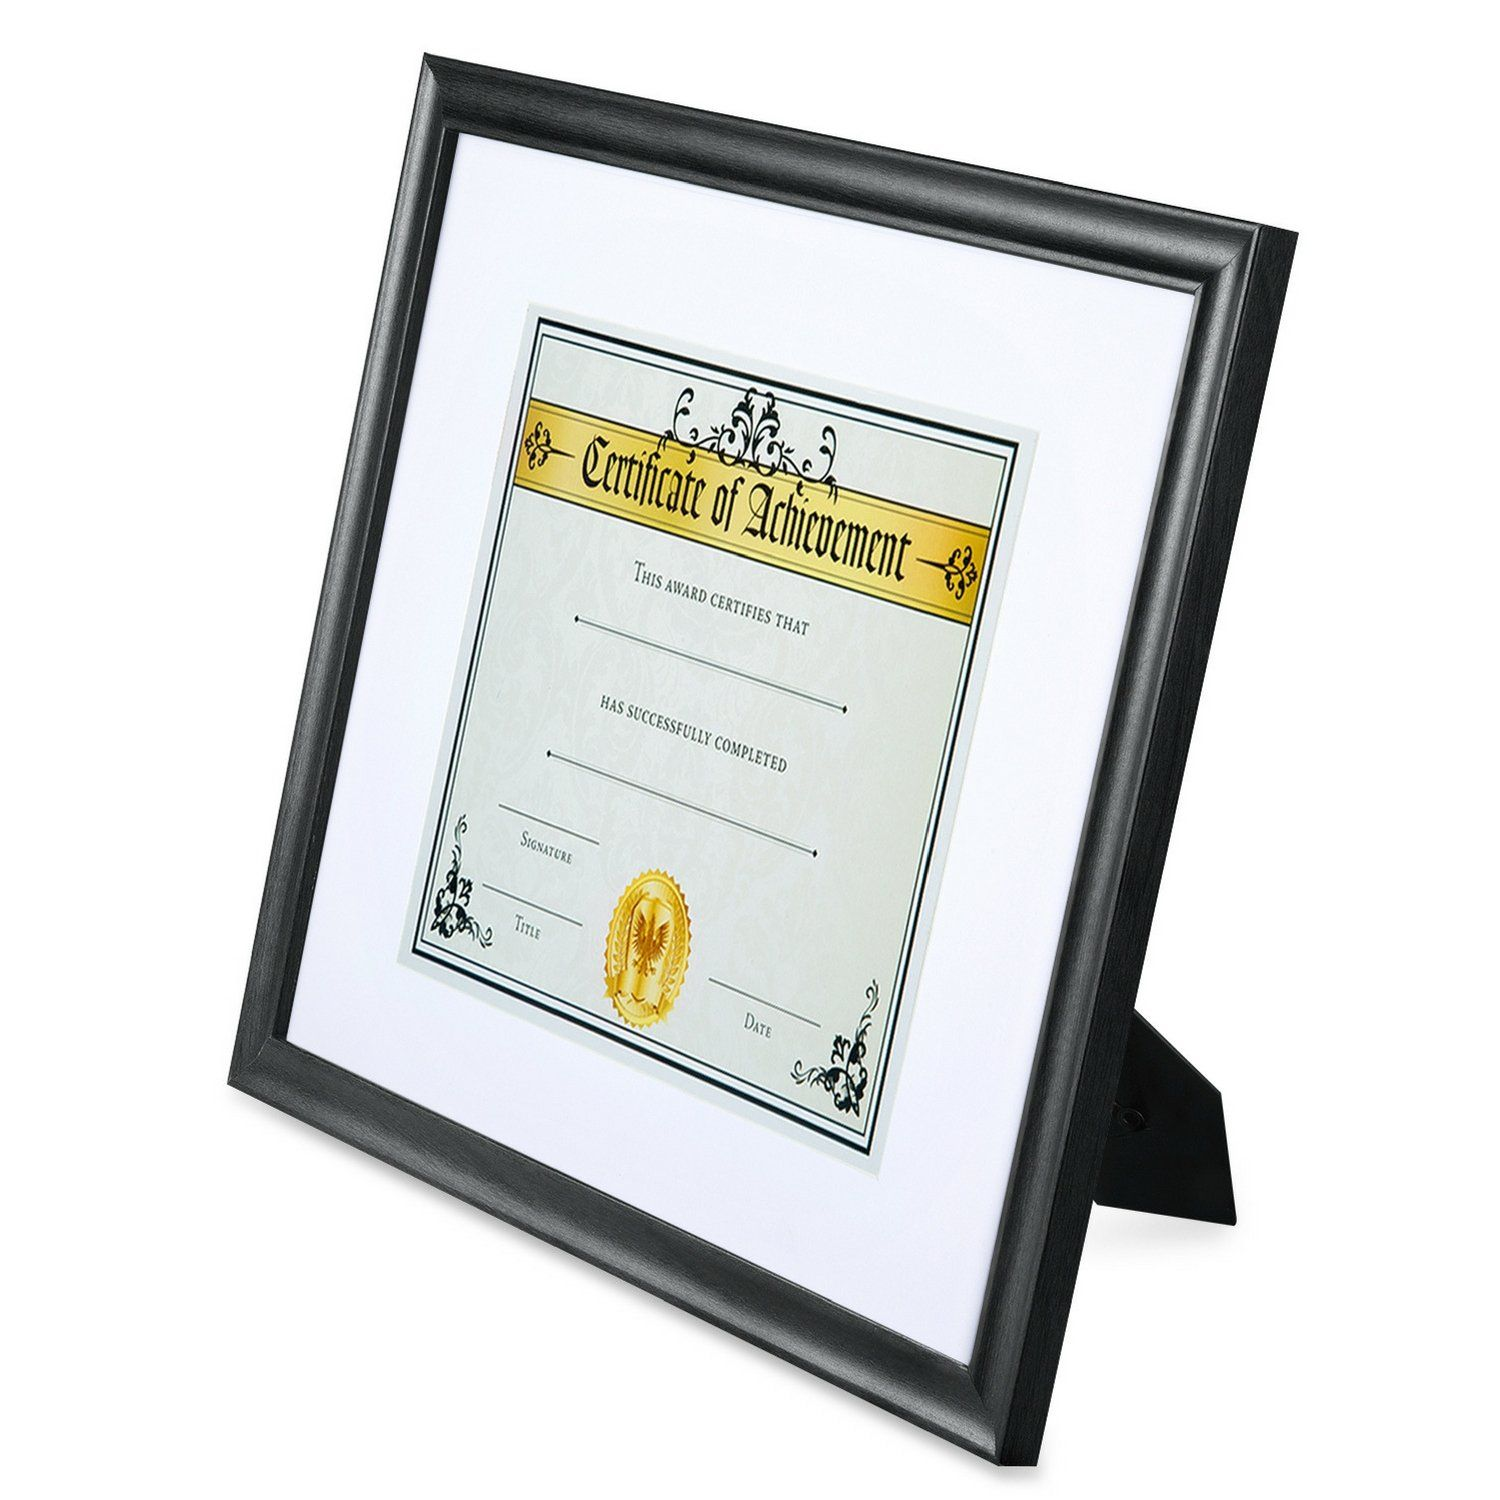 Icona Bay 11 By 14 Picture Frame 11x14 Matted To 8 5x11 Matte Black Wood Document Frame With Mat 2 Achievement C Picture Frame Mat Document Frame Diploma Frame